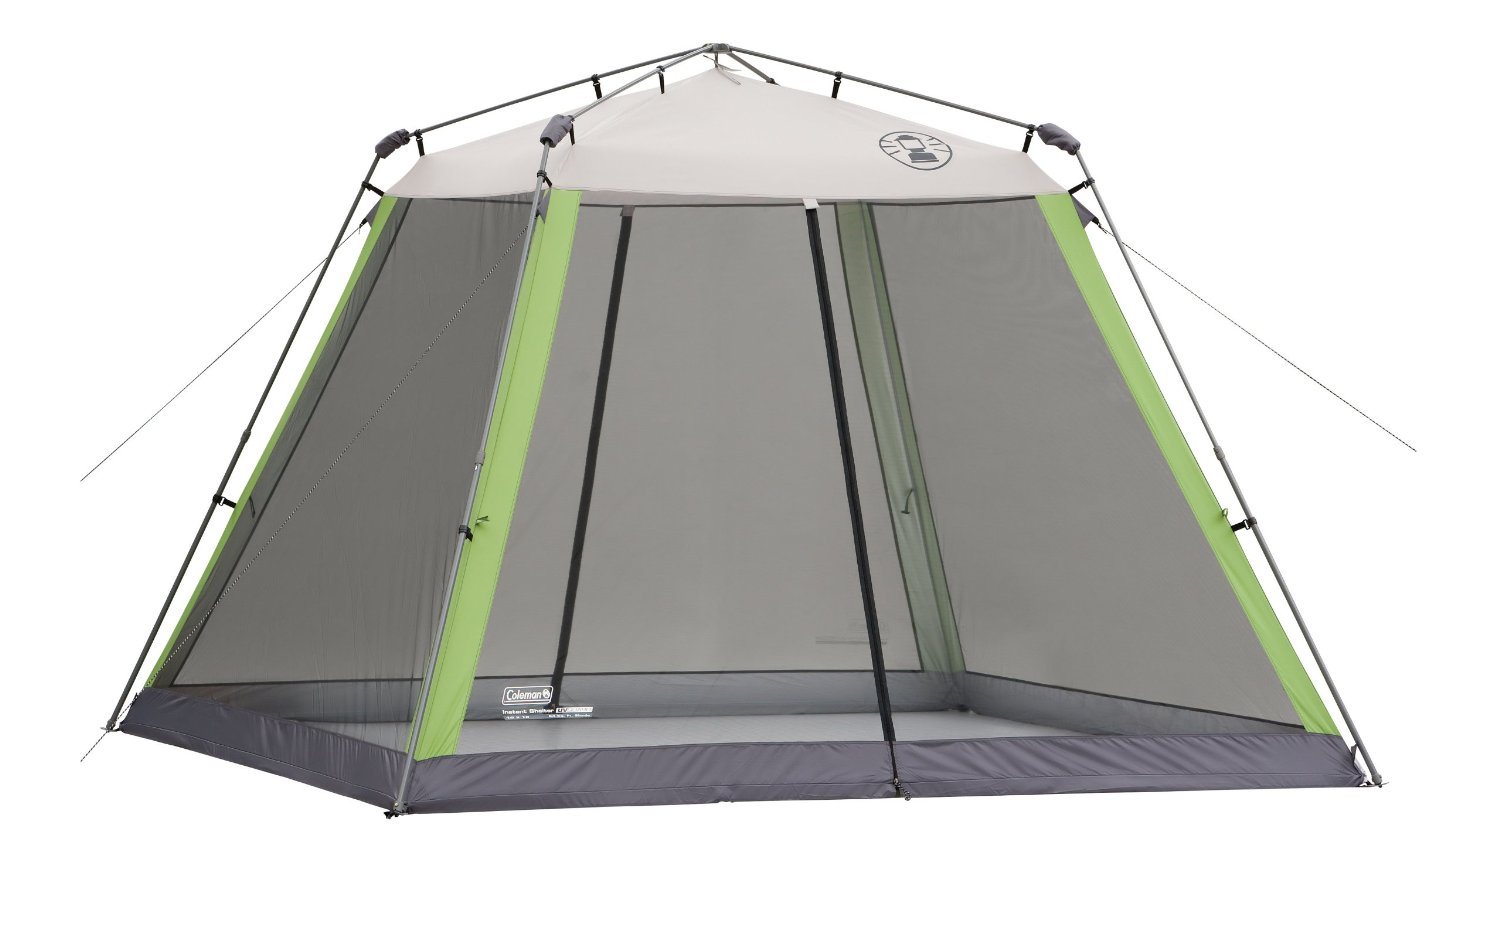 Youu0027ll want to use extra care when putting up and taking down an economy-priced tent.  sc 1 st  The C&ing Family & Screen Tent Buying Guide